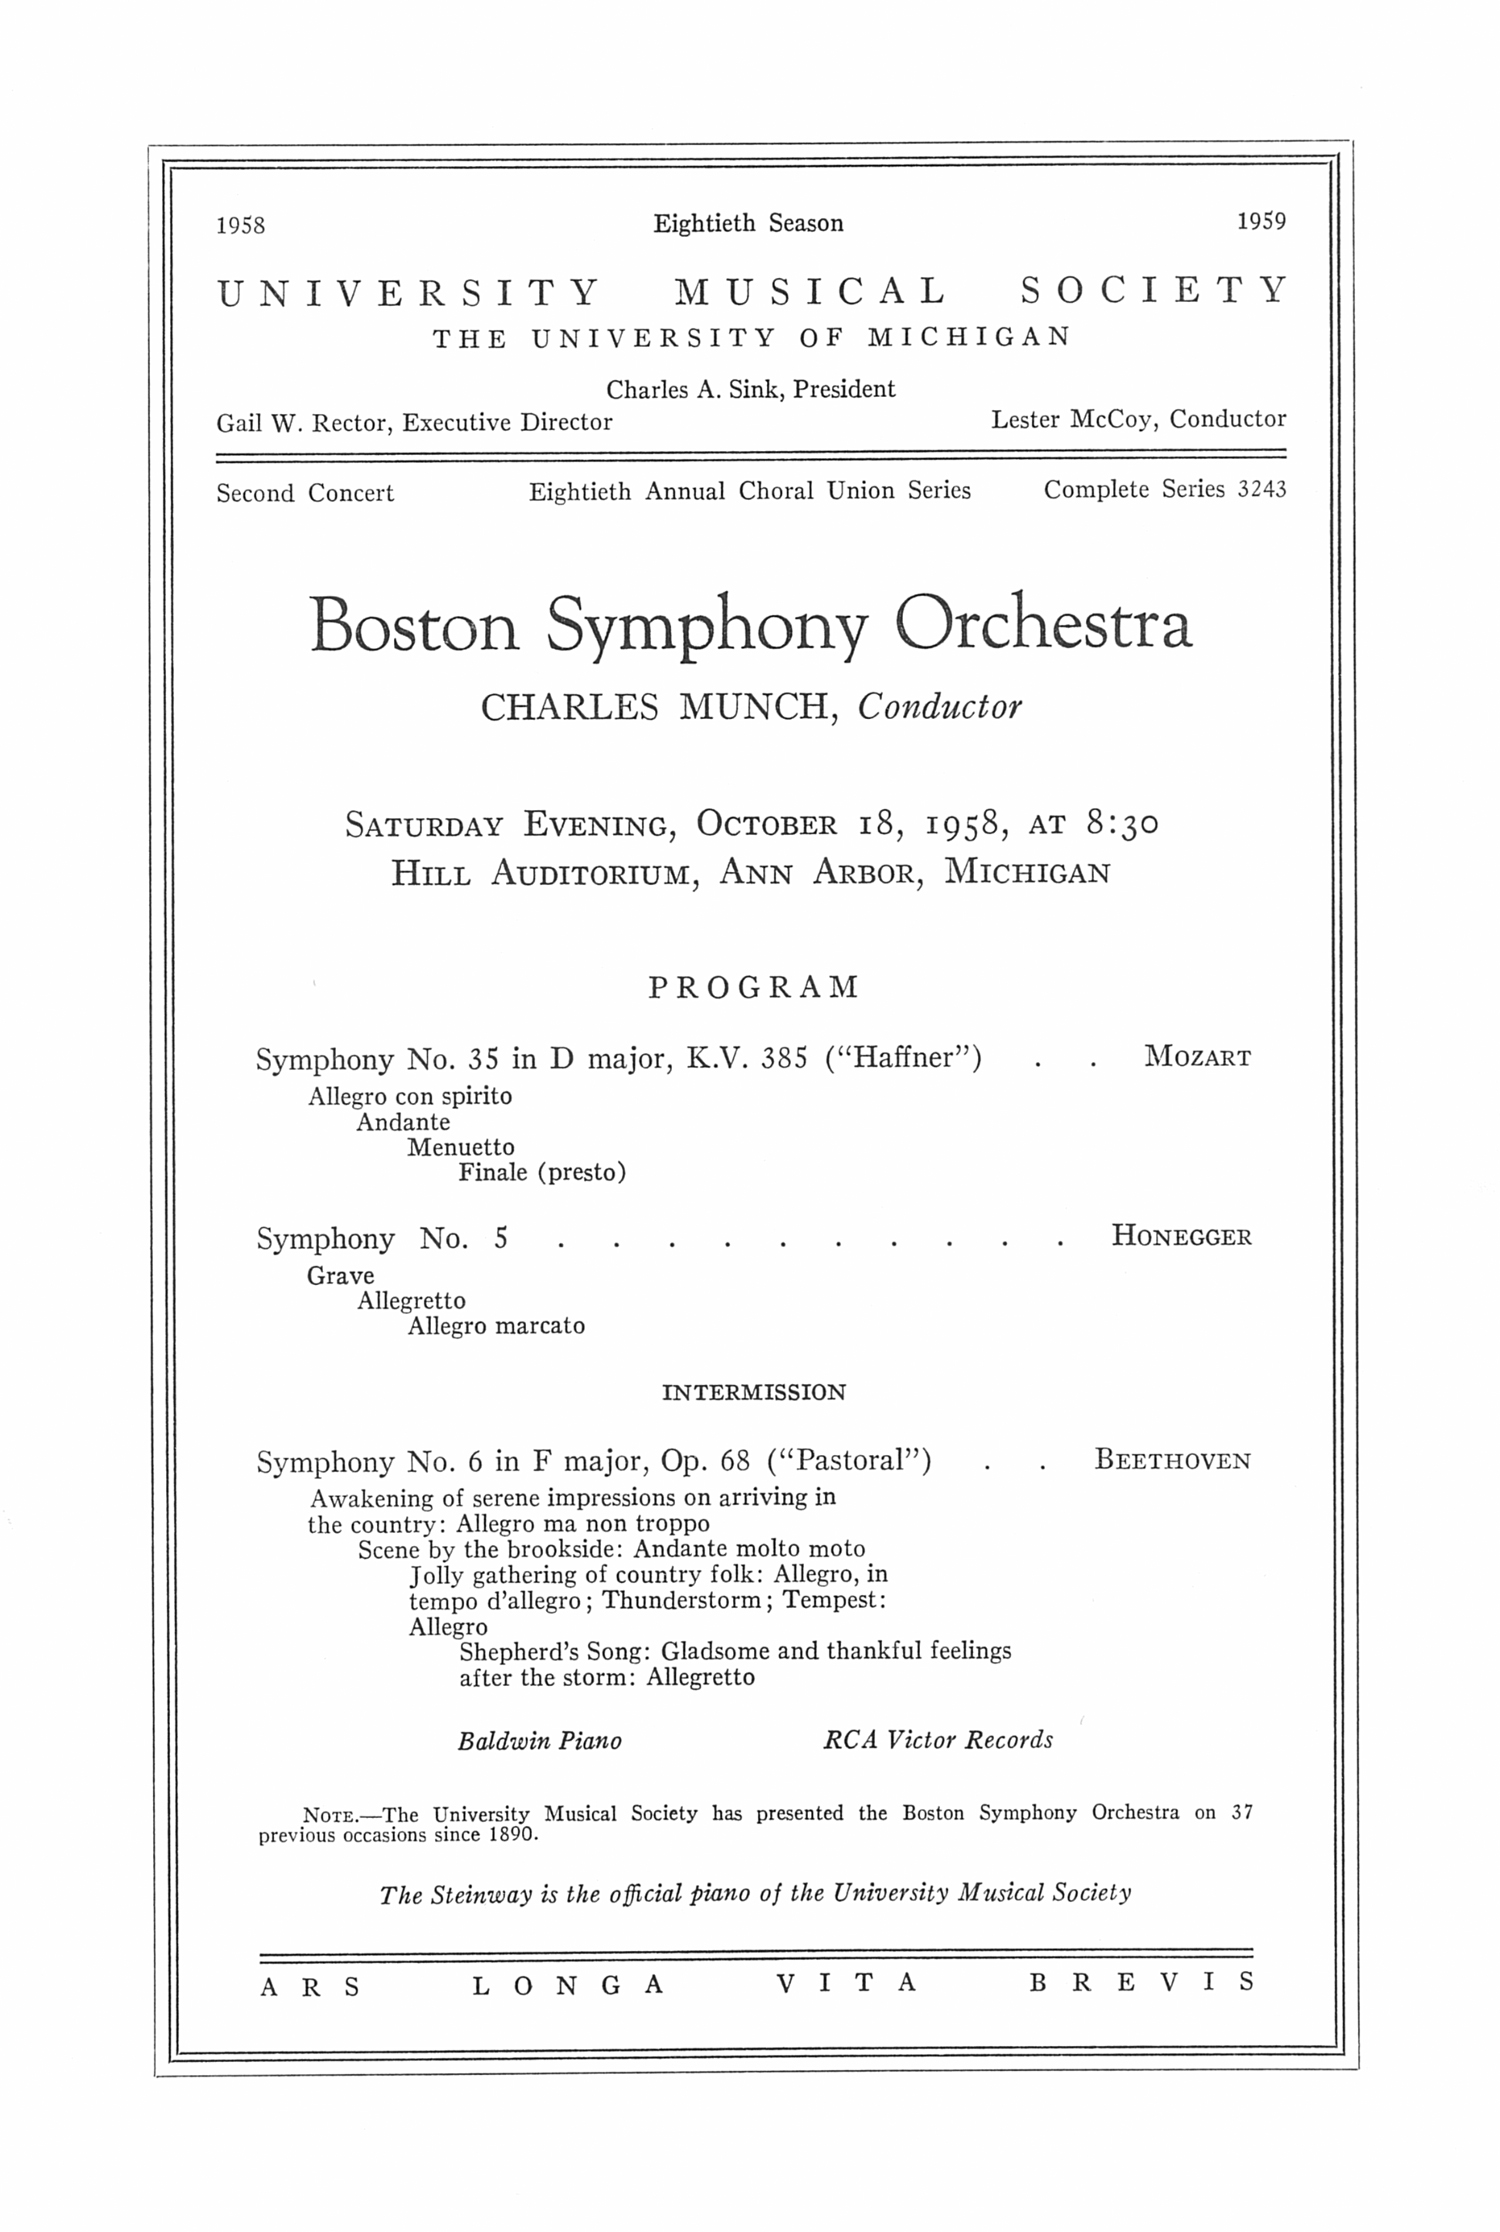 UMS Concert Program, October 18, 1958: Boston Symphony Orchestra --  image